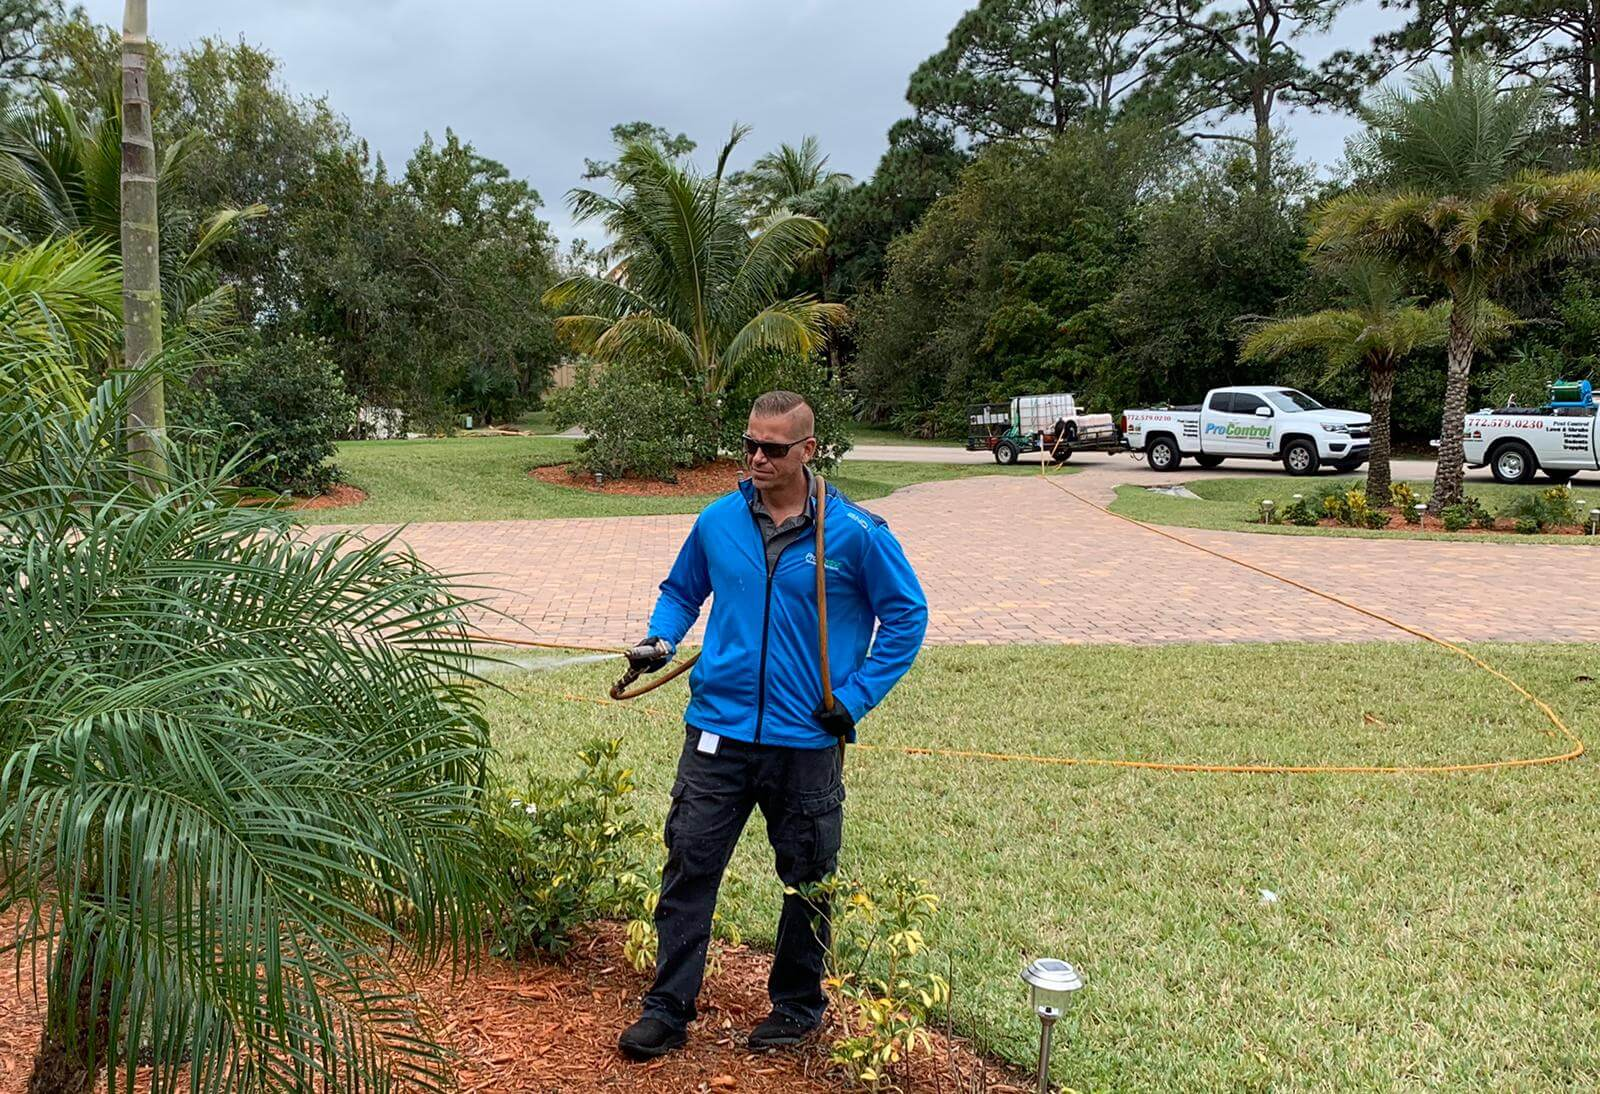 Professional Lawn Treatment Service and pest control west palm beach